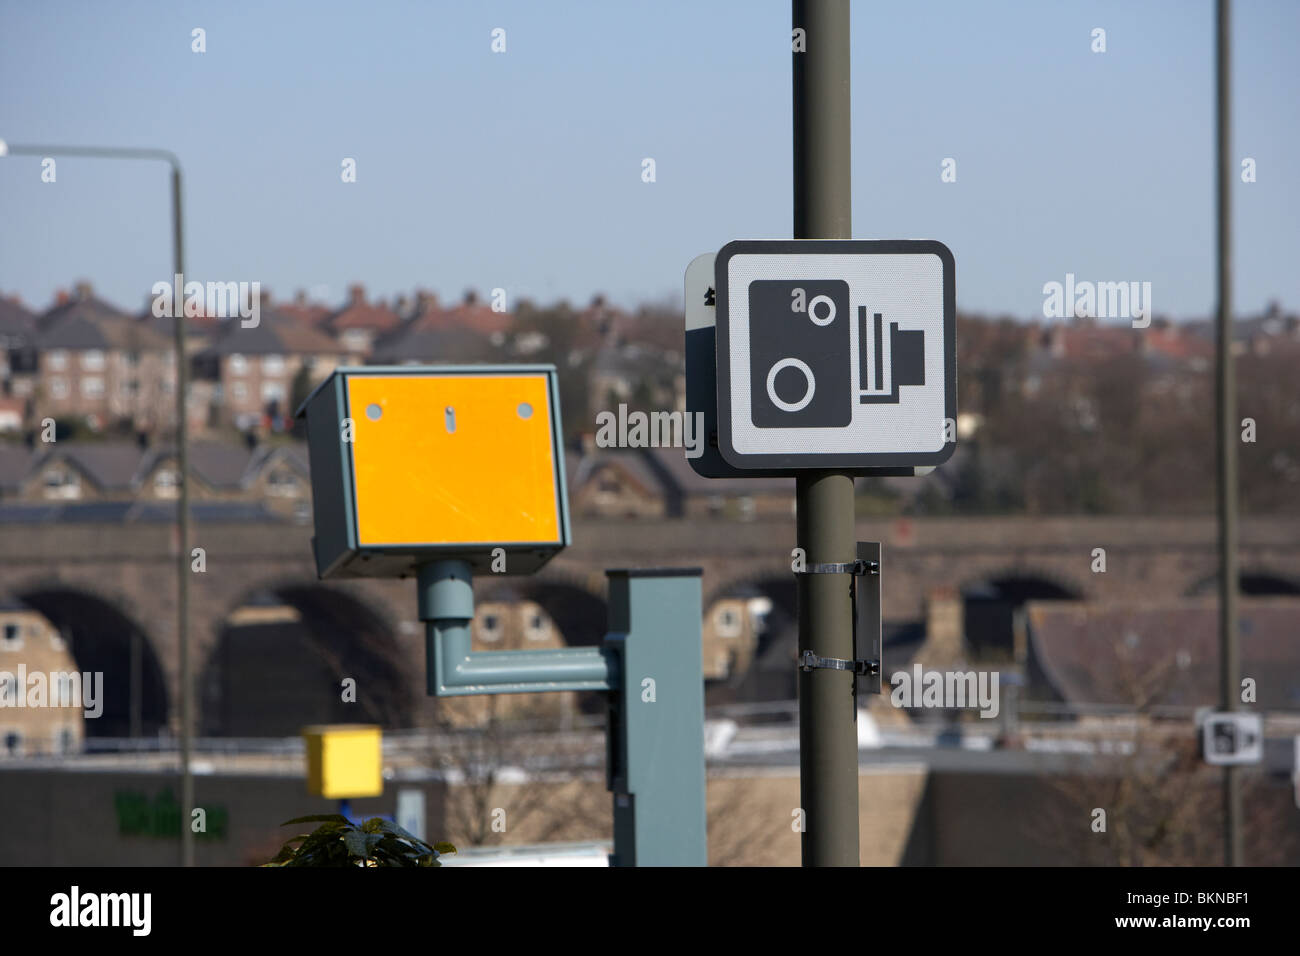 Road Signs Uk Stock Photos & Road Signs Uk Stock Images - Alamy